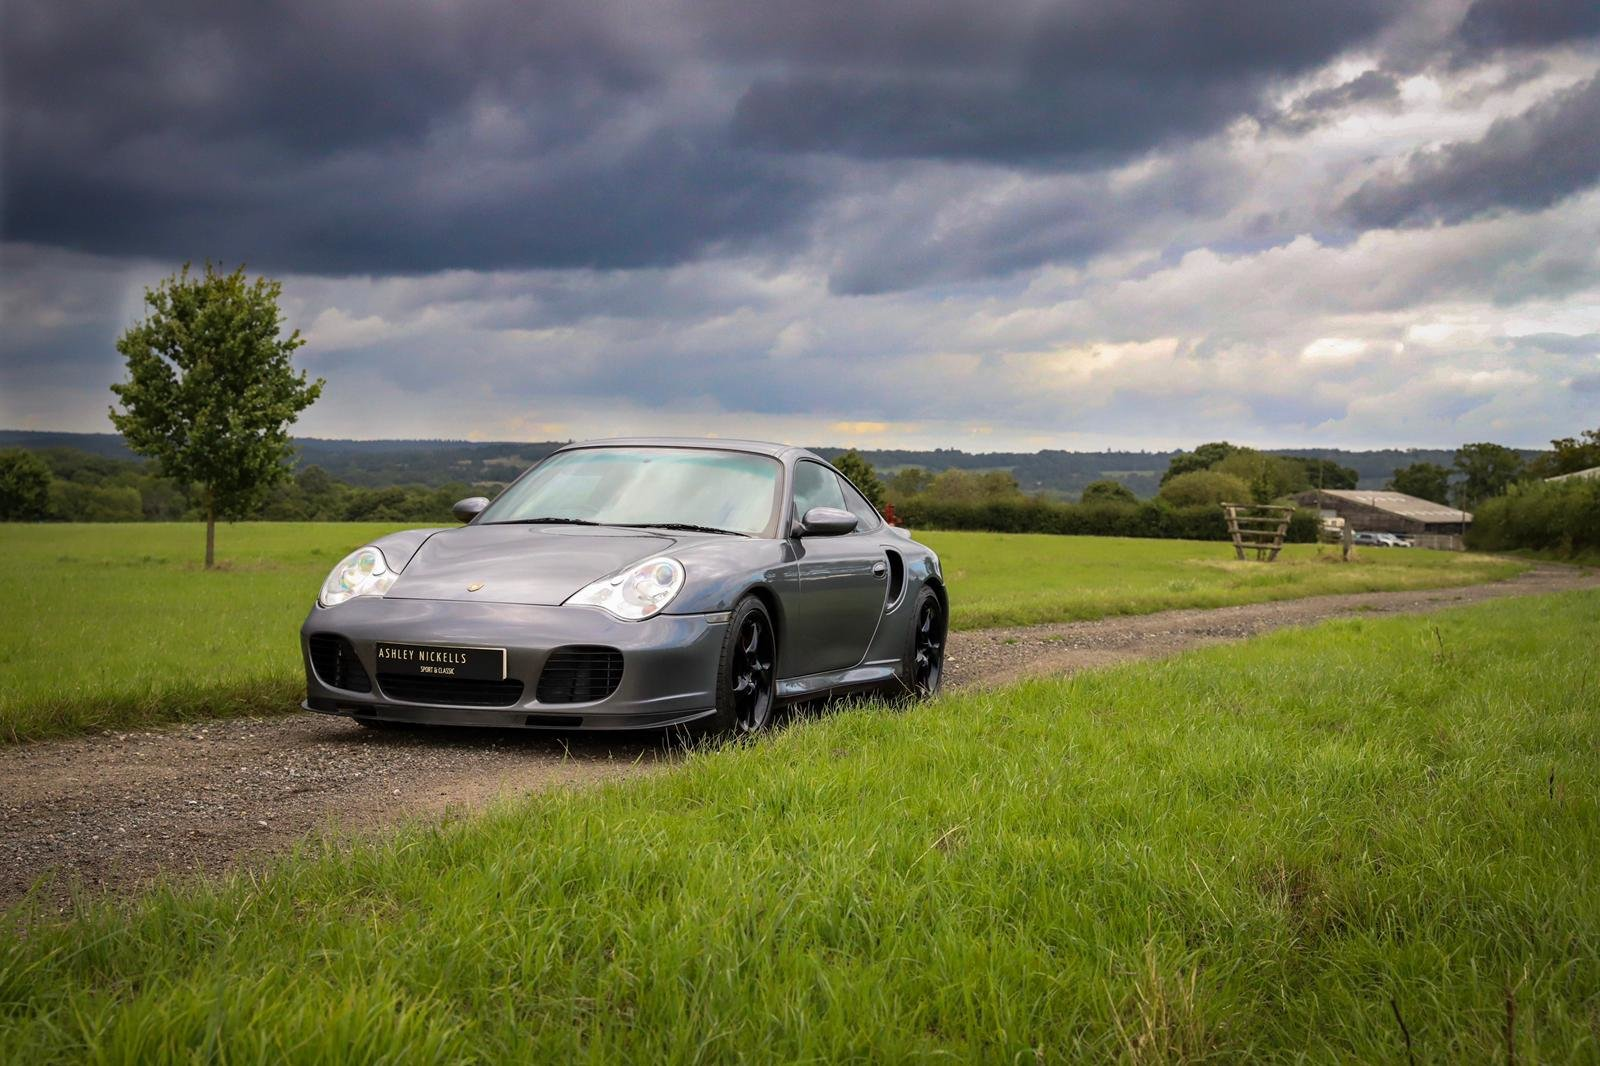 2000 PORSCHE 996 TURBO - MANUAL COUPE - 20 SERVICE STAMPS For Sale (picture 2 of 6)